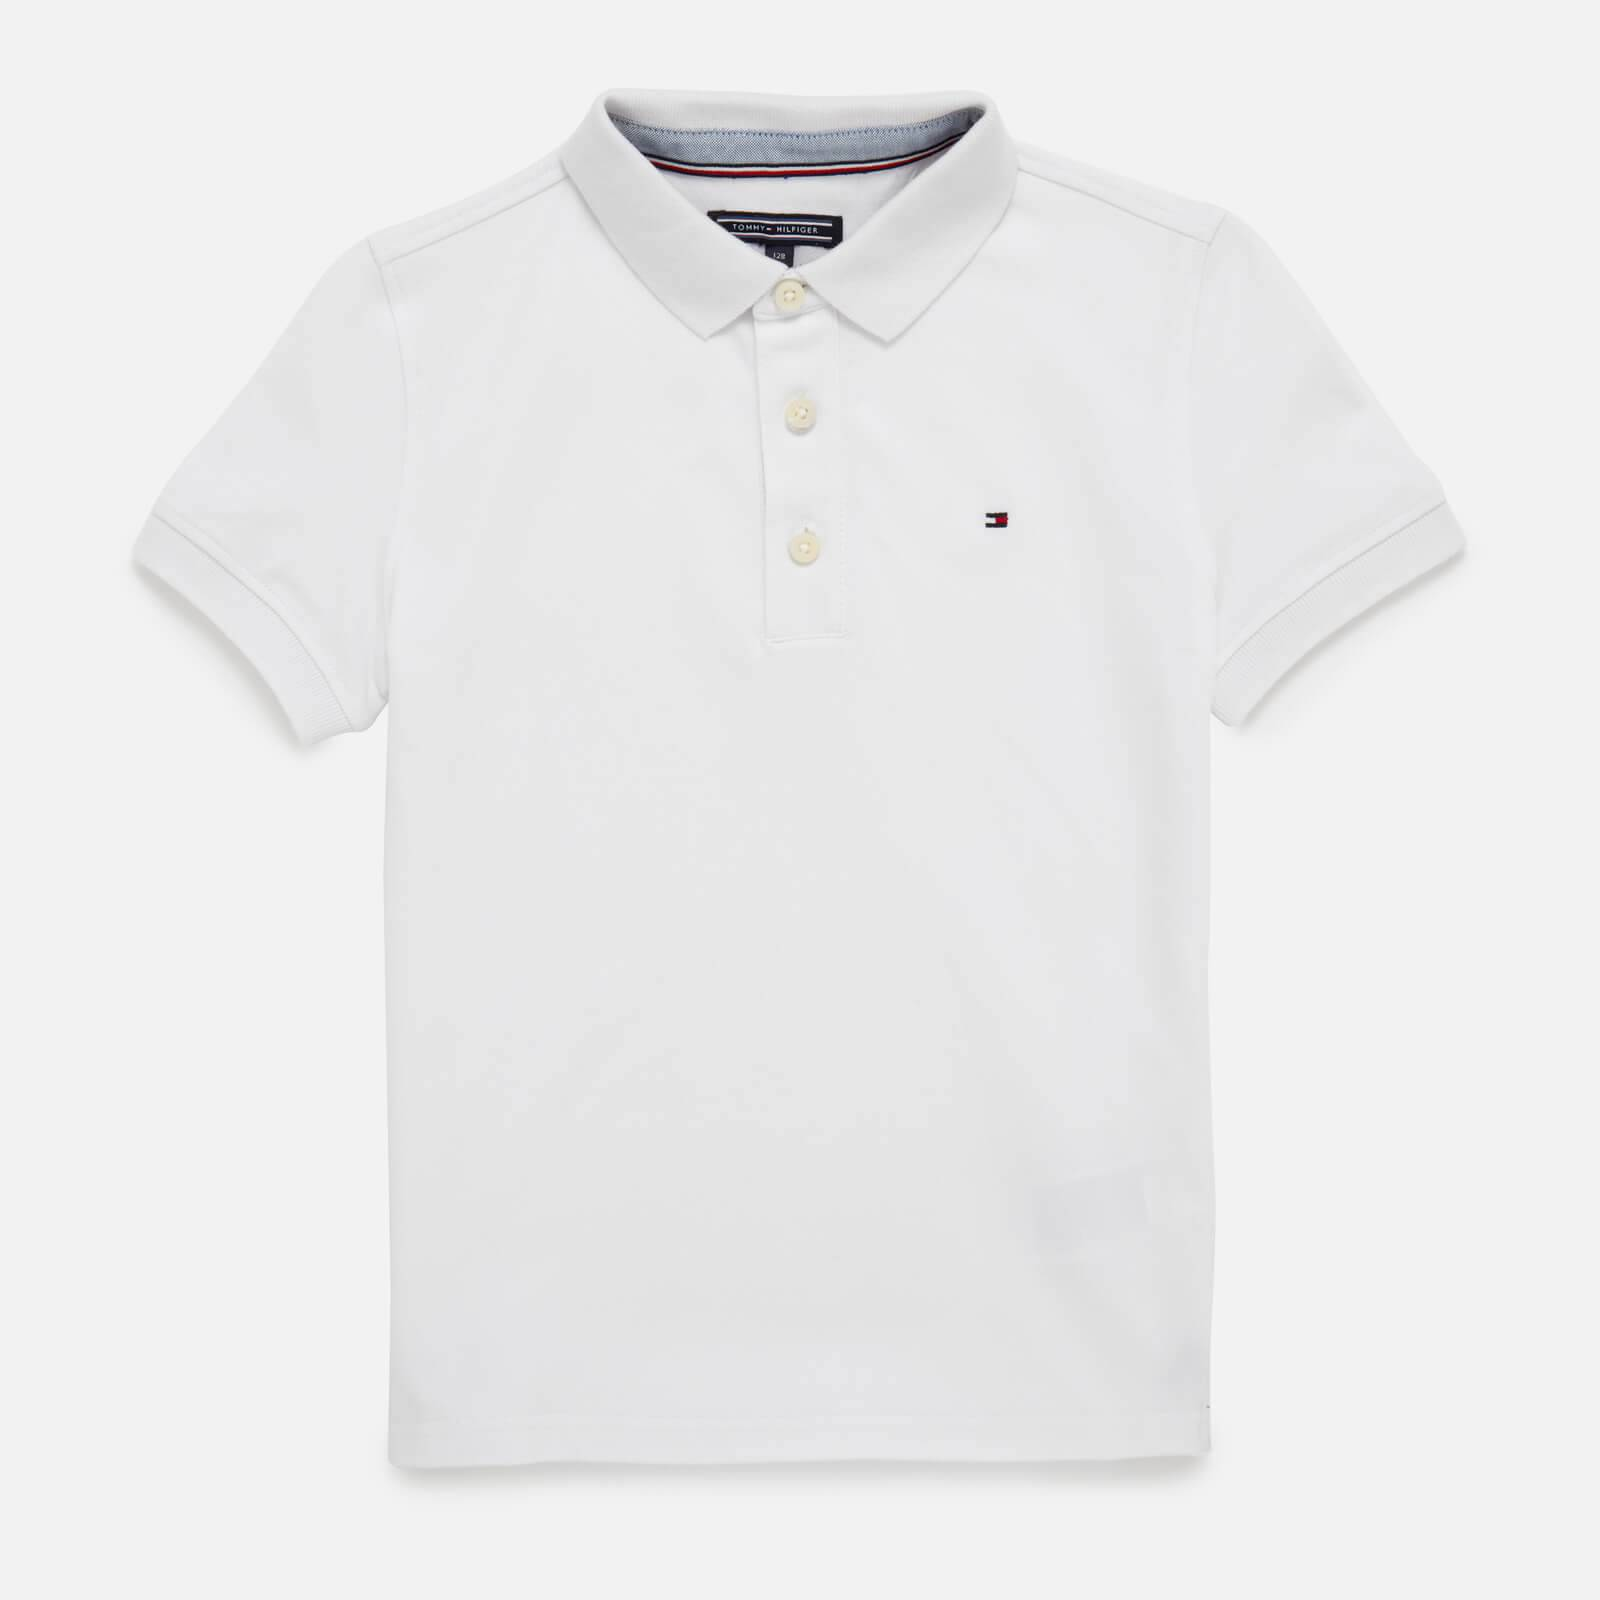 Tommy Kids Boys' Iconic Polo Shirt - Bright White - 8 Years